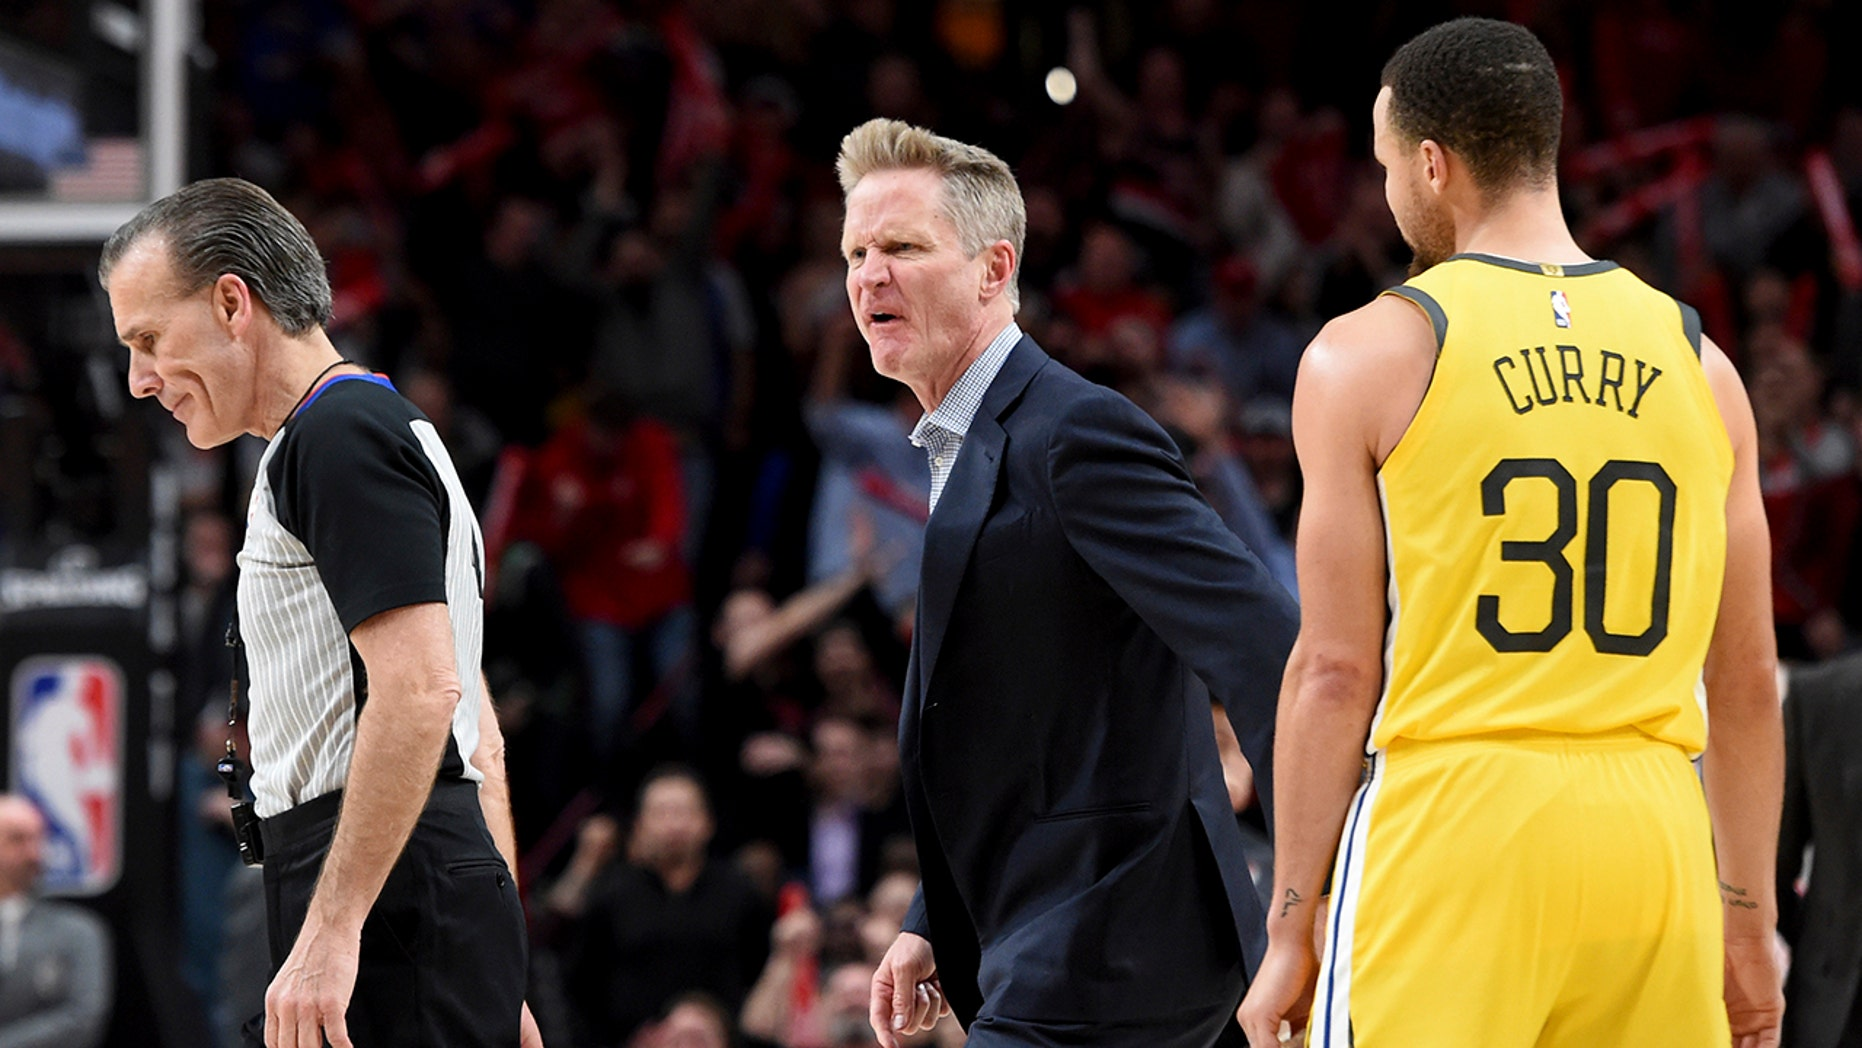 Golden State Warriors coach Steve Kerr, center, yells at referee Ken Mauer, left, after being called for a technical foul, while guard Stephen Curry, right, watches during the second half of an NBA basketball game against the Portland Trail Blazers in Portland, Ore., Wednesday, Feb. 13, 2019. The Blazers won 129-107.